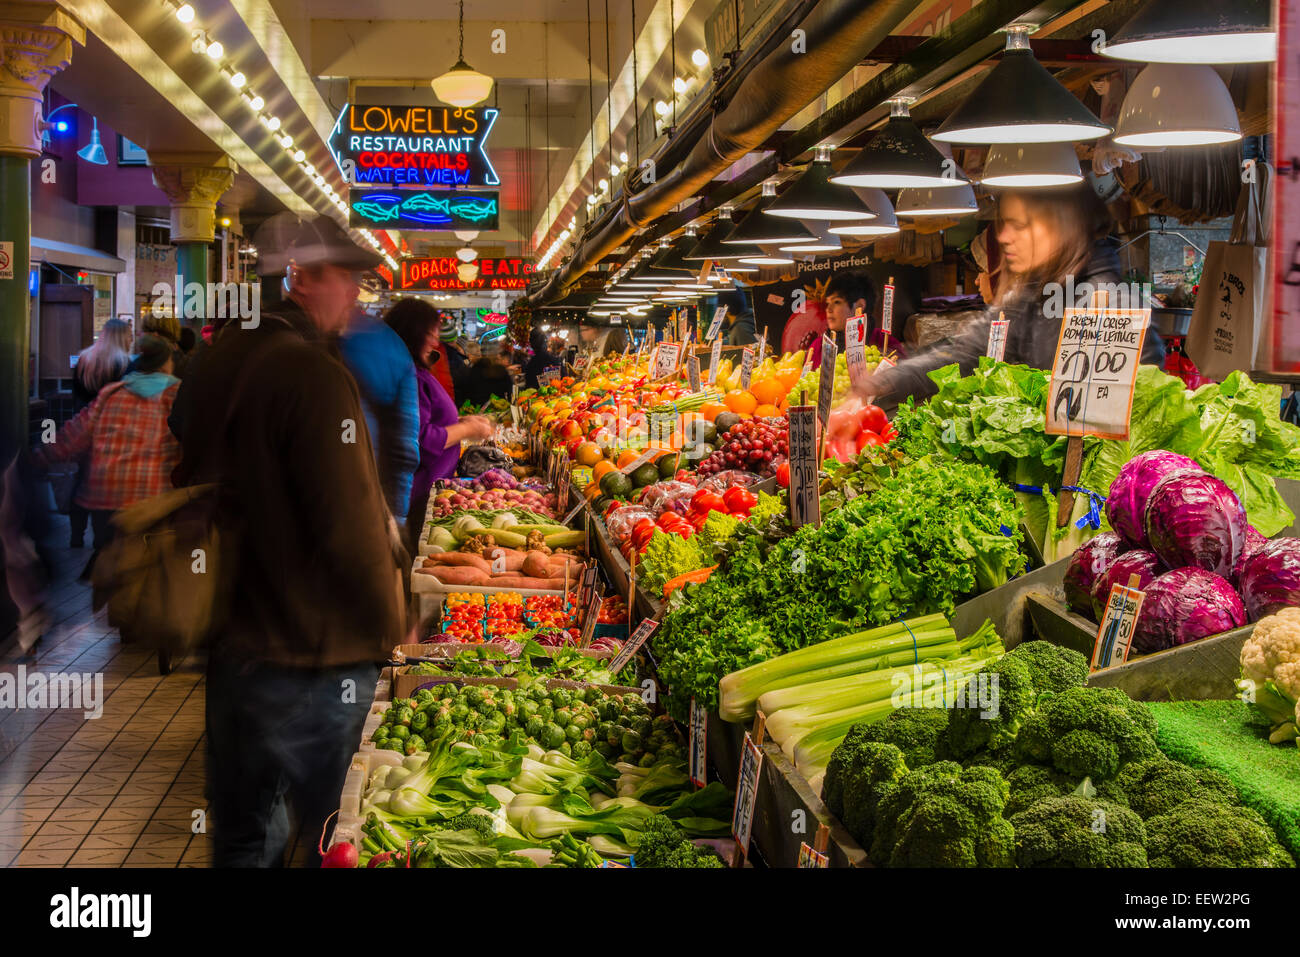 Fruit and vegetable stall at Pike Place Market, Seattle, Washington, USA - Stock Image